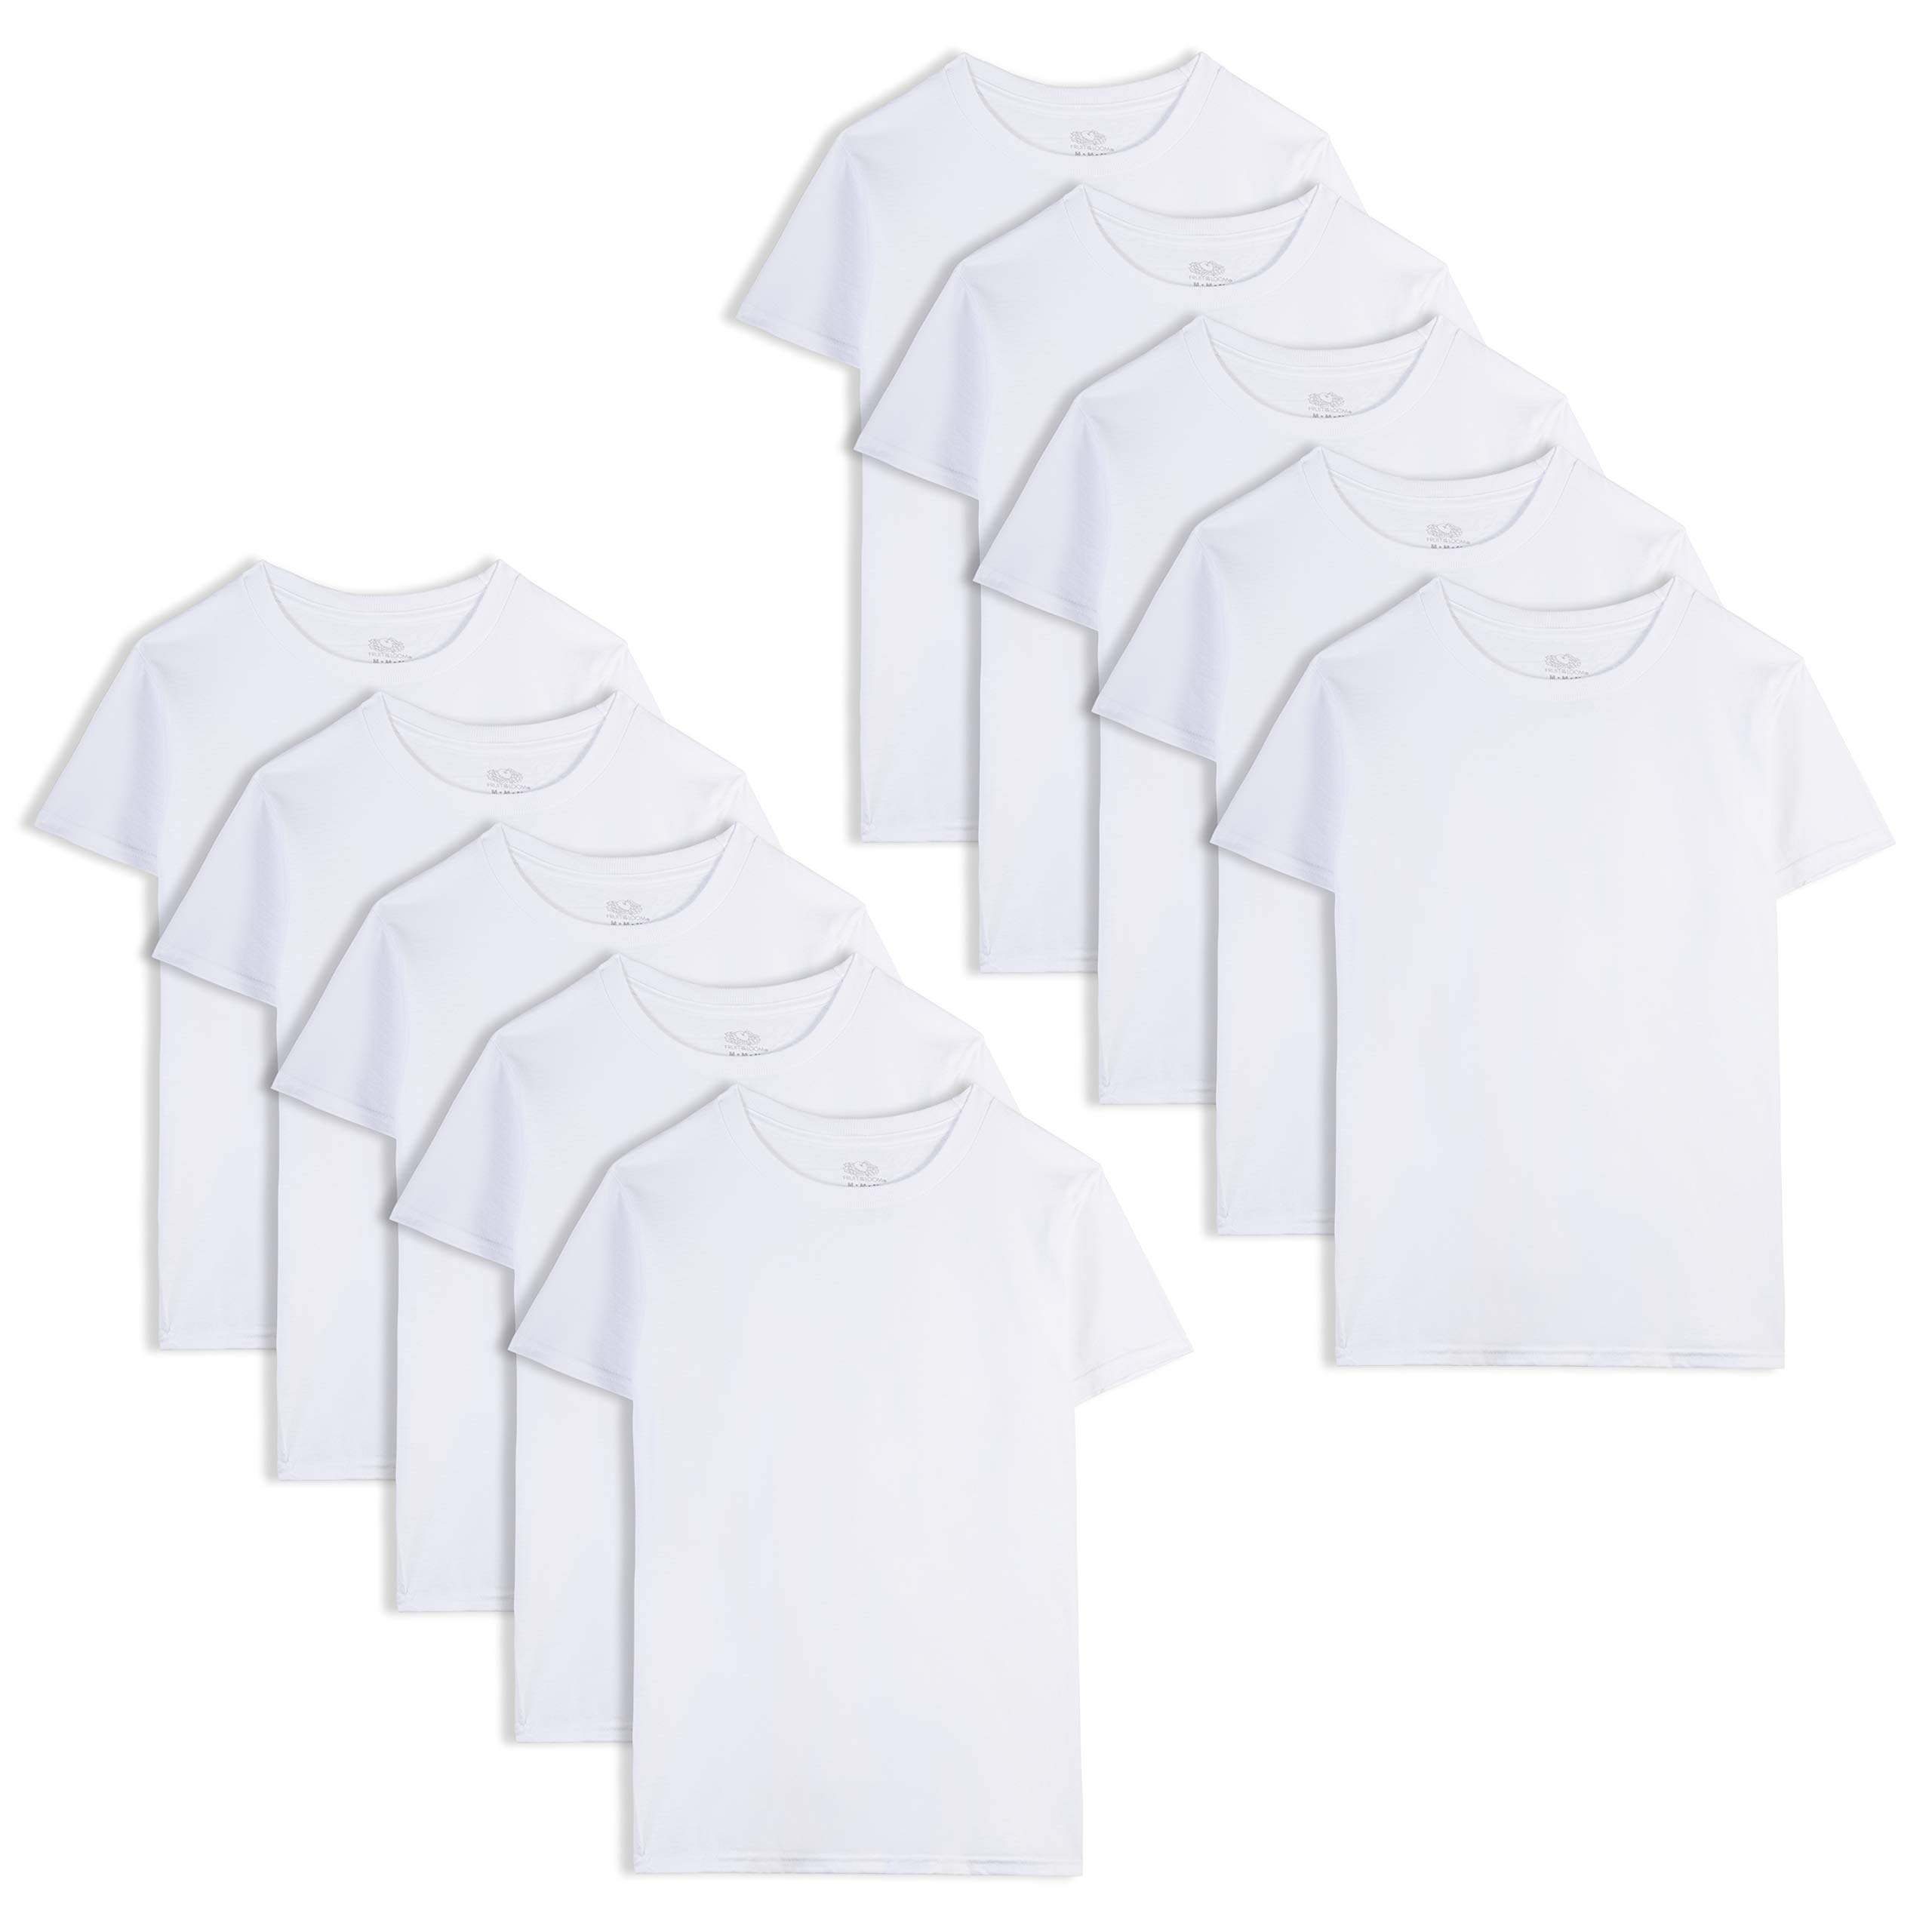 Fruit of the Loom Boys' Cotton White T Shirt, X-Small (10-Pack), White Ice (10 Pack)